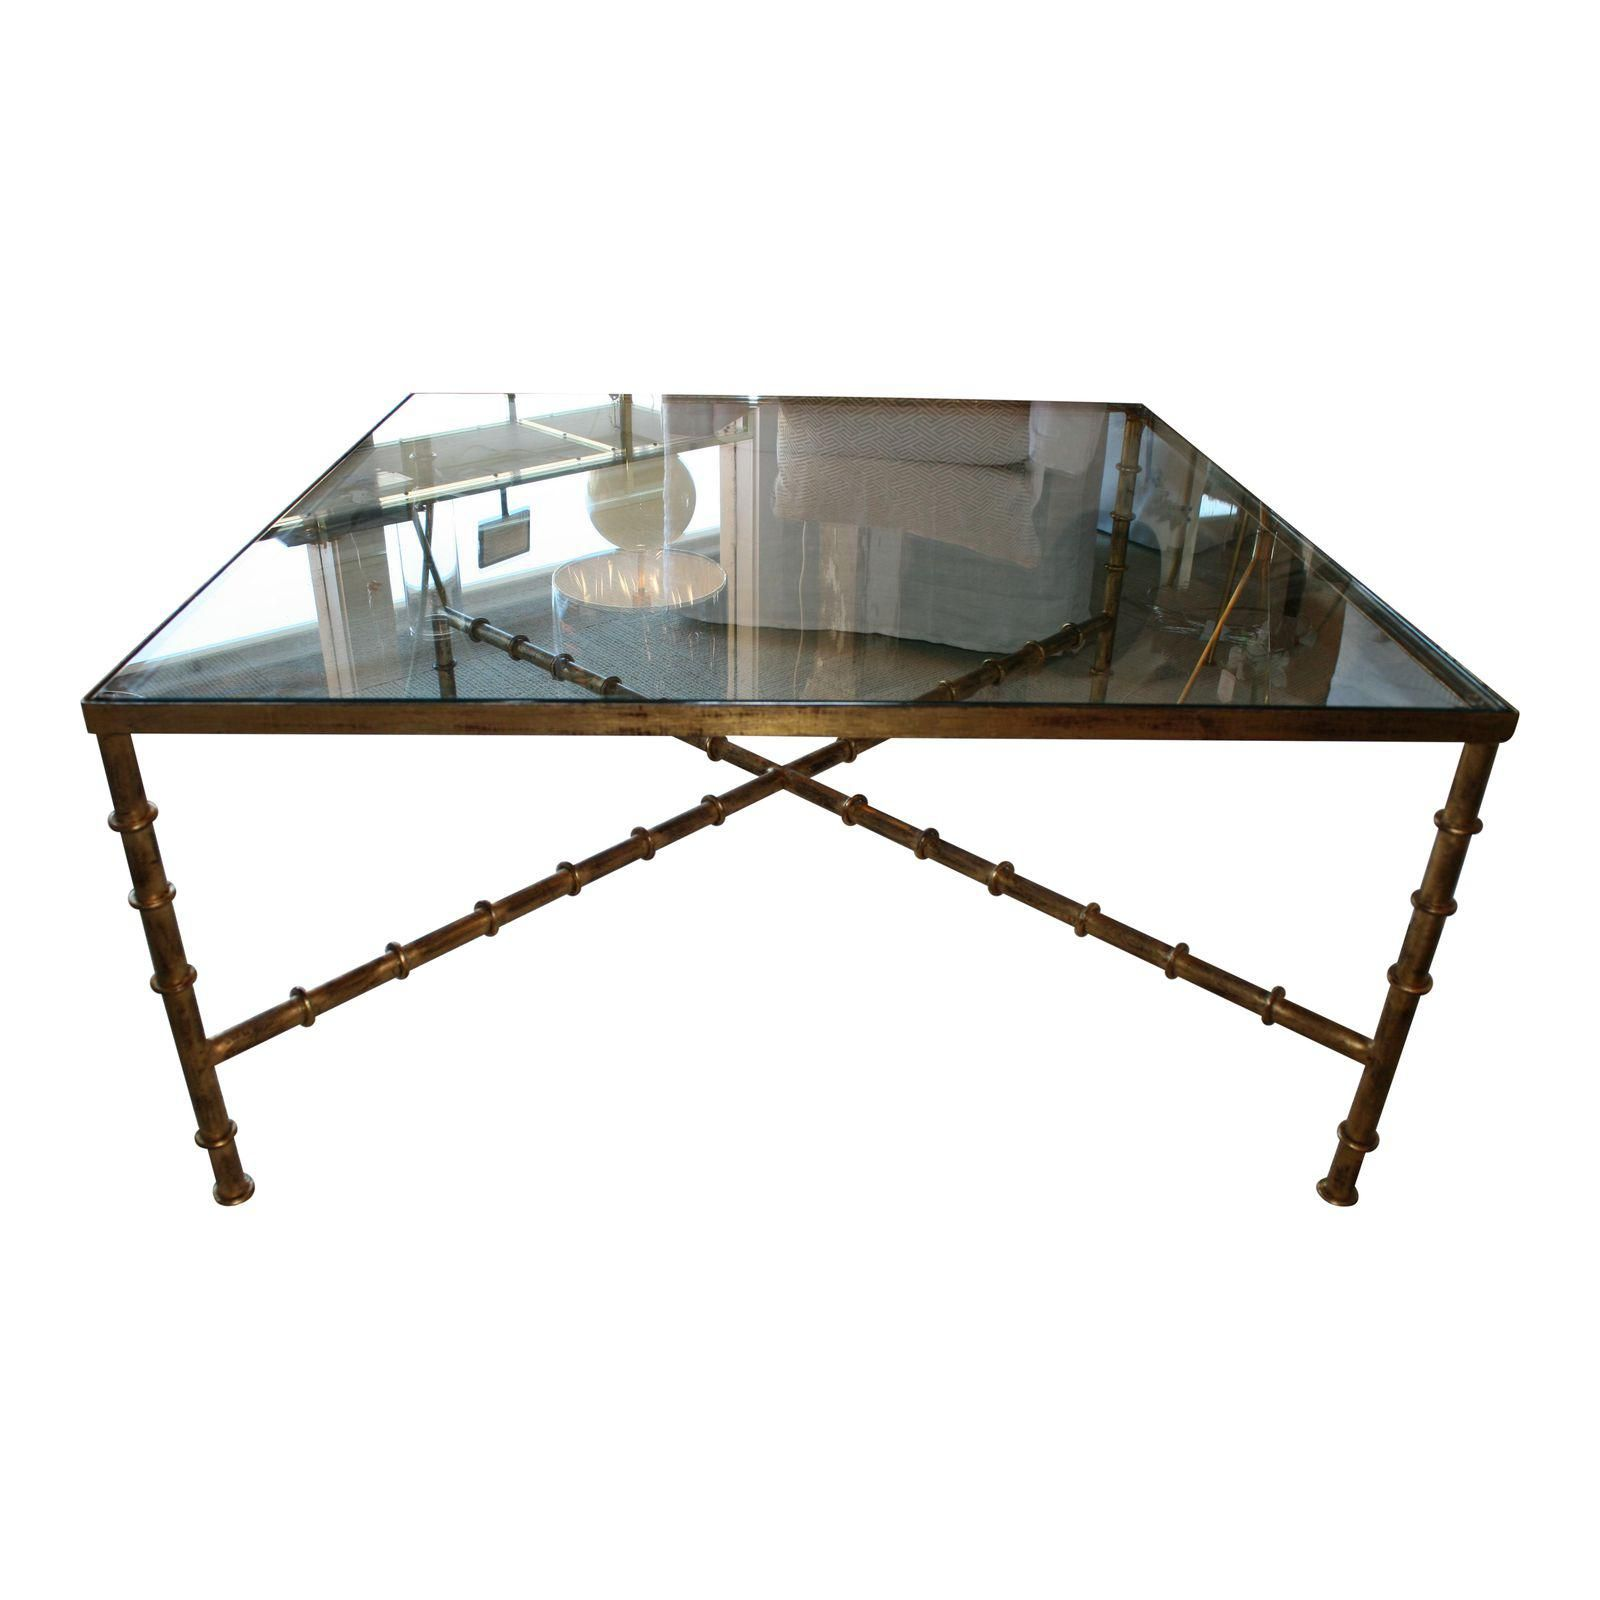 Vintage Kravet Faux Bamboo Brass Coffee Table Faux Bamboo Coffee Table Brass Coffee Table [ 1600 x 1600 Pixel ]